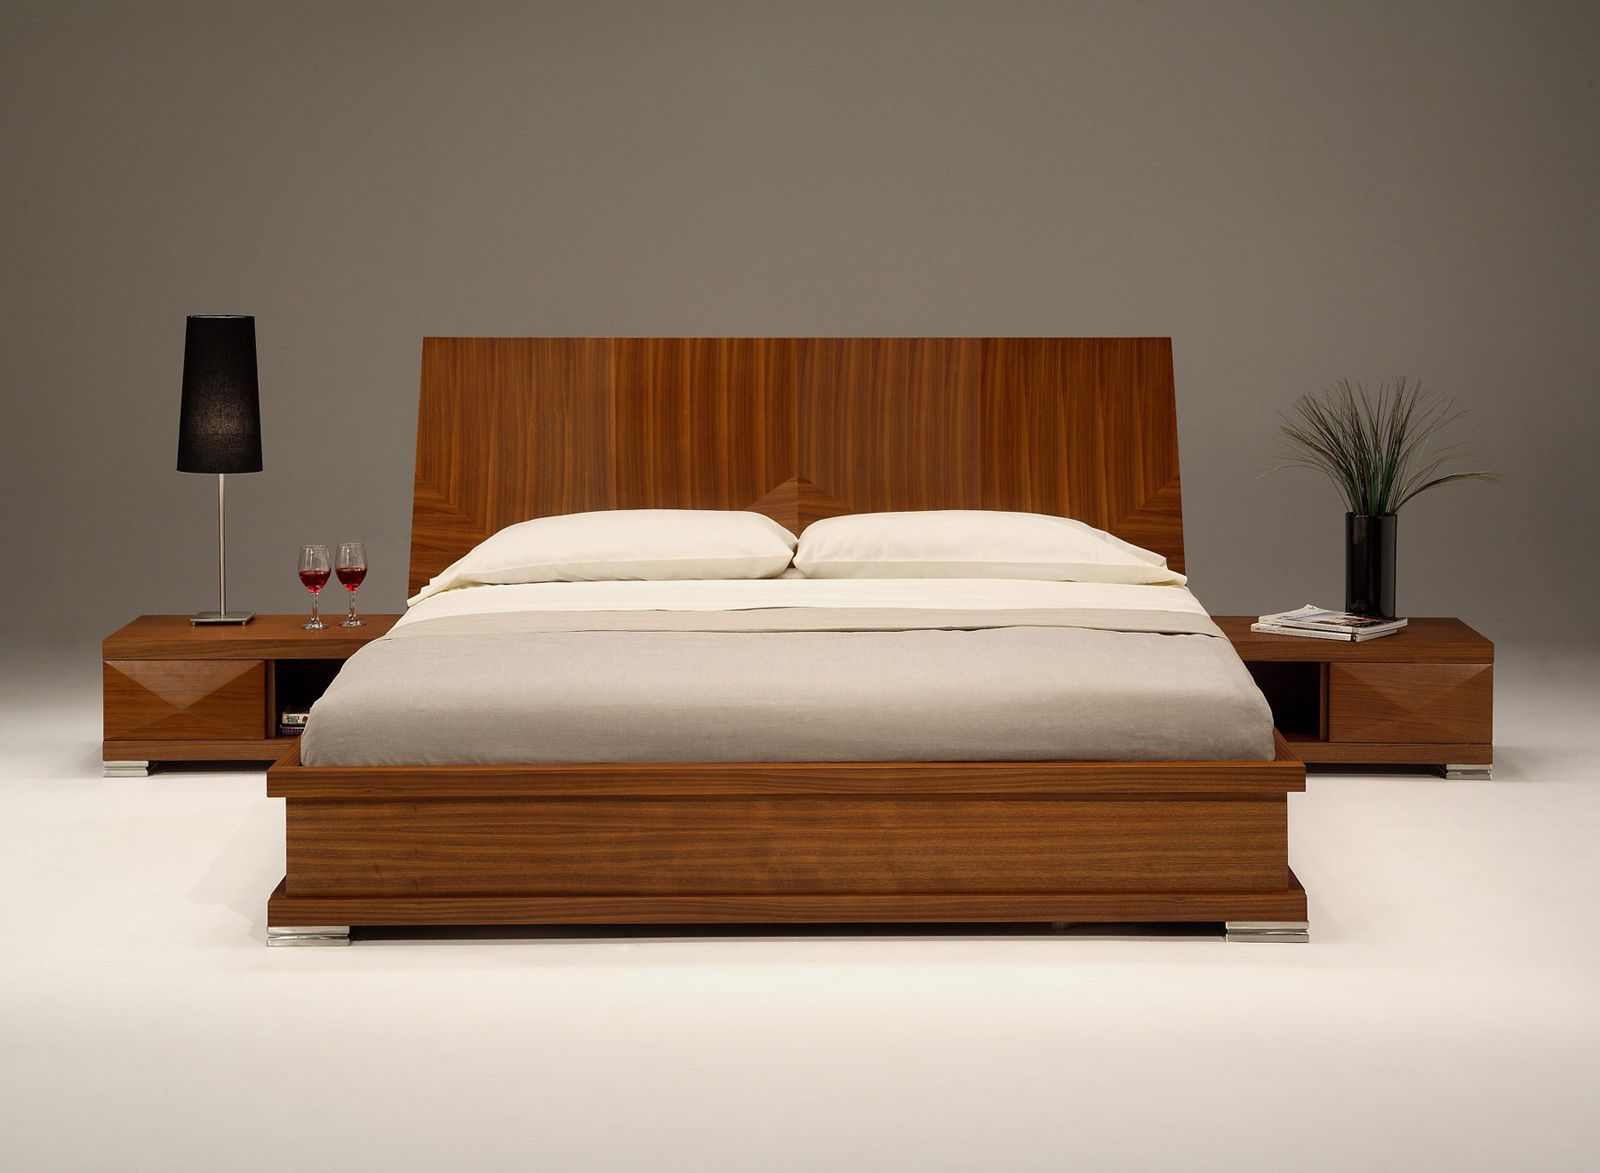 Bedroom design tips with modern bedroom furniture for Bedroom furniture beds